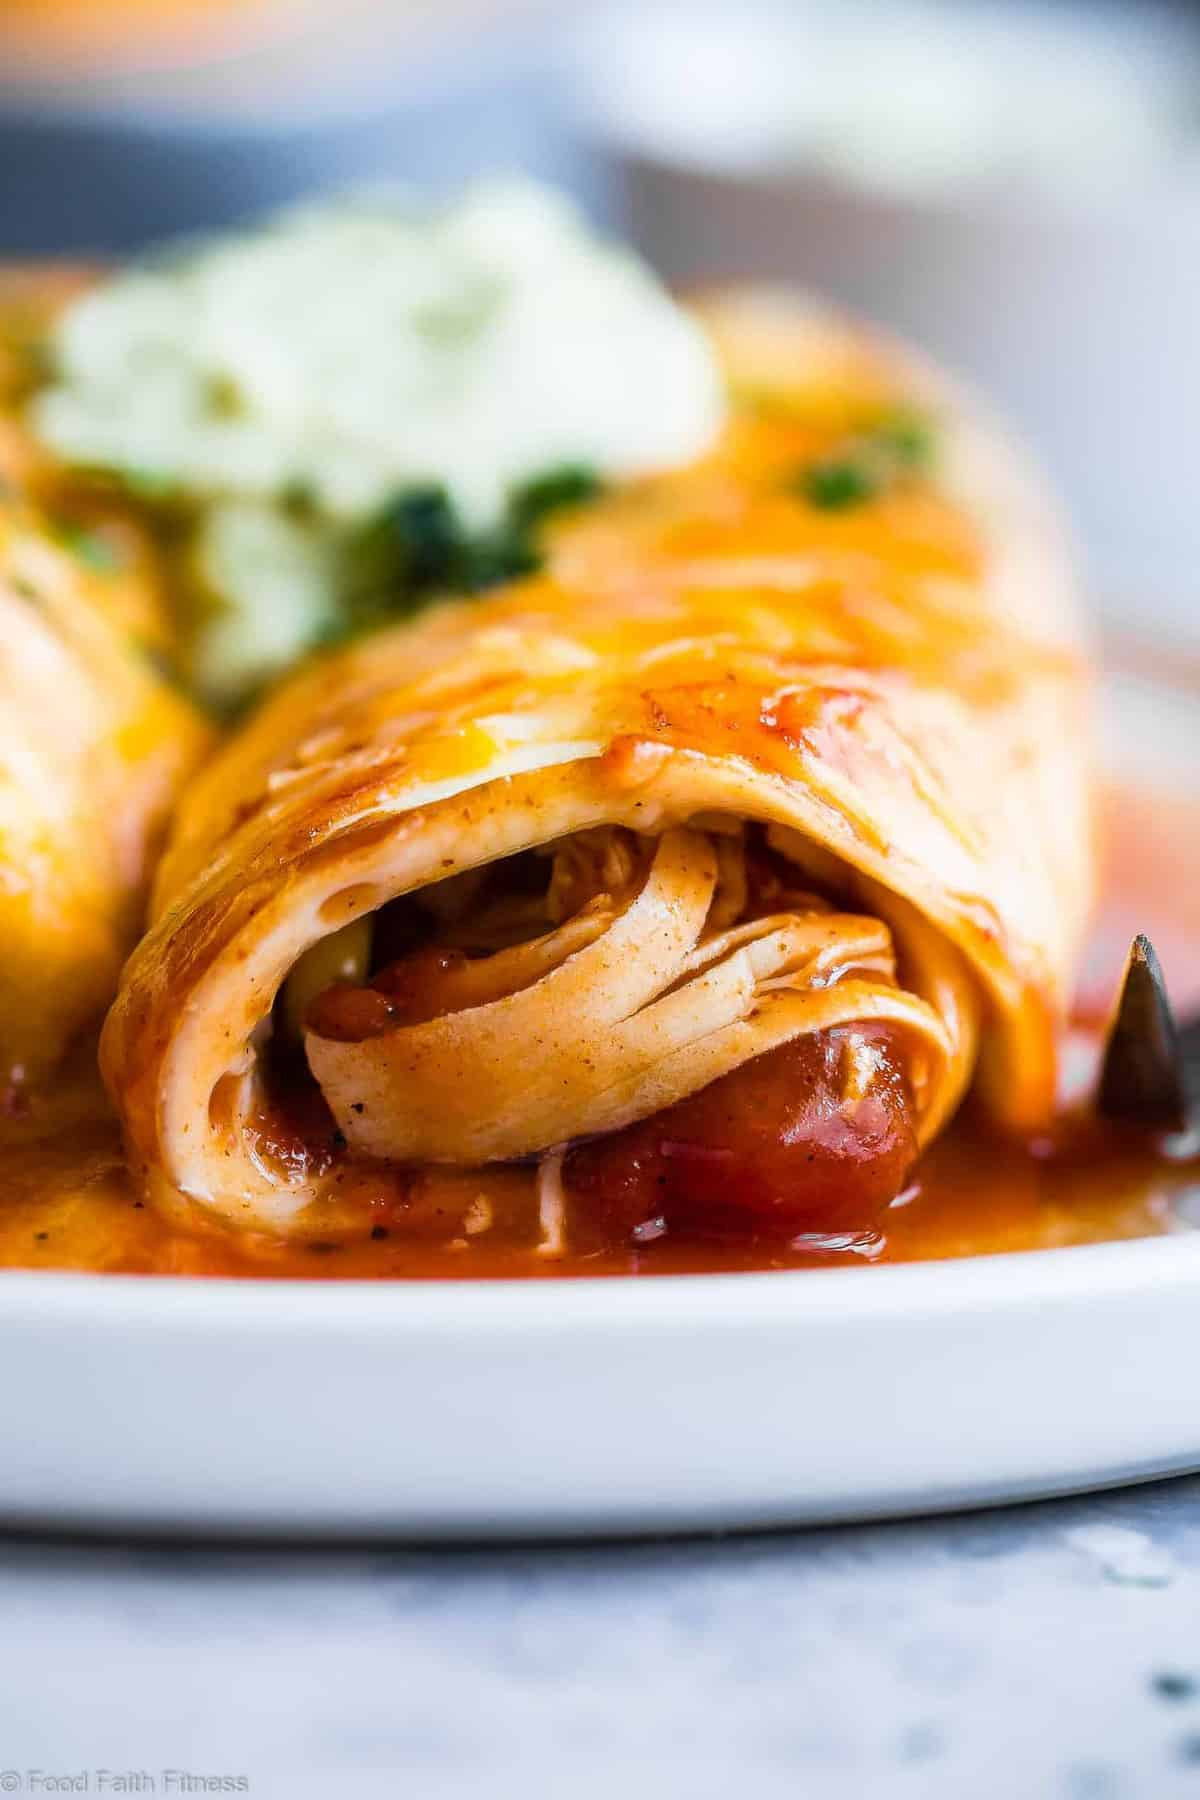 Healthy Low Carb Chicken Enchiladas -This gluten free Healthy Low Carb Chicken Enchilada Recipe uses a secret ingredient to make it low carb, proteinPACKED and under 500 calories for a HUGE serving! These do NOT taste healthy and even picky eaters love them! | #Foodfaithfitness | #Lowcarb #Glutenfree #Healthy #Grainfree #Enchiladas